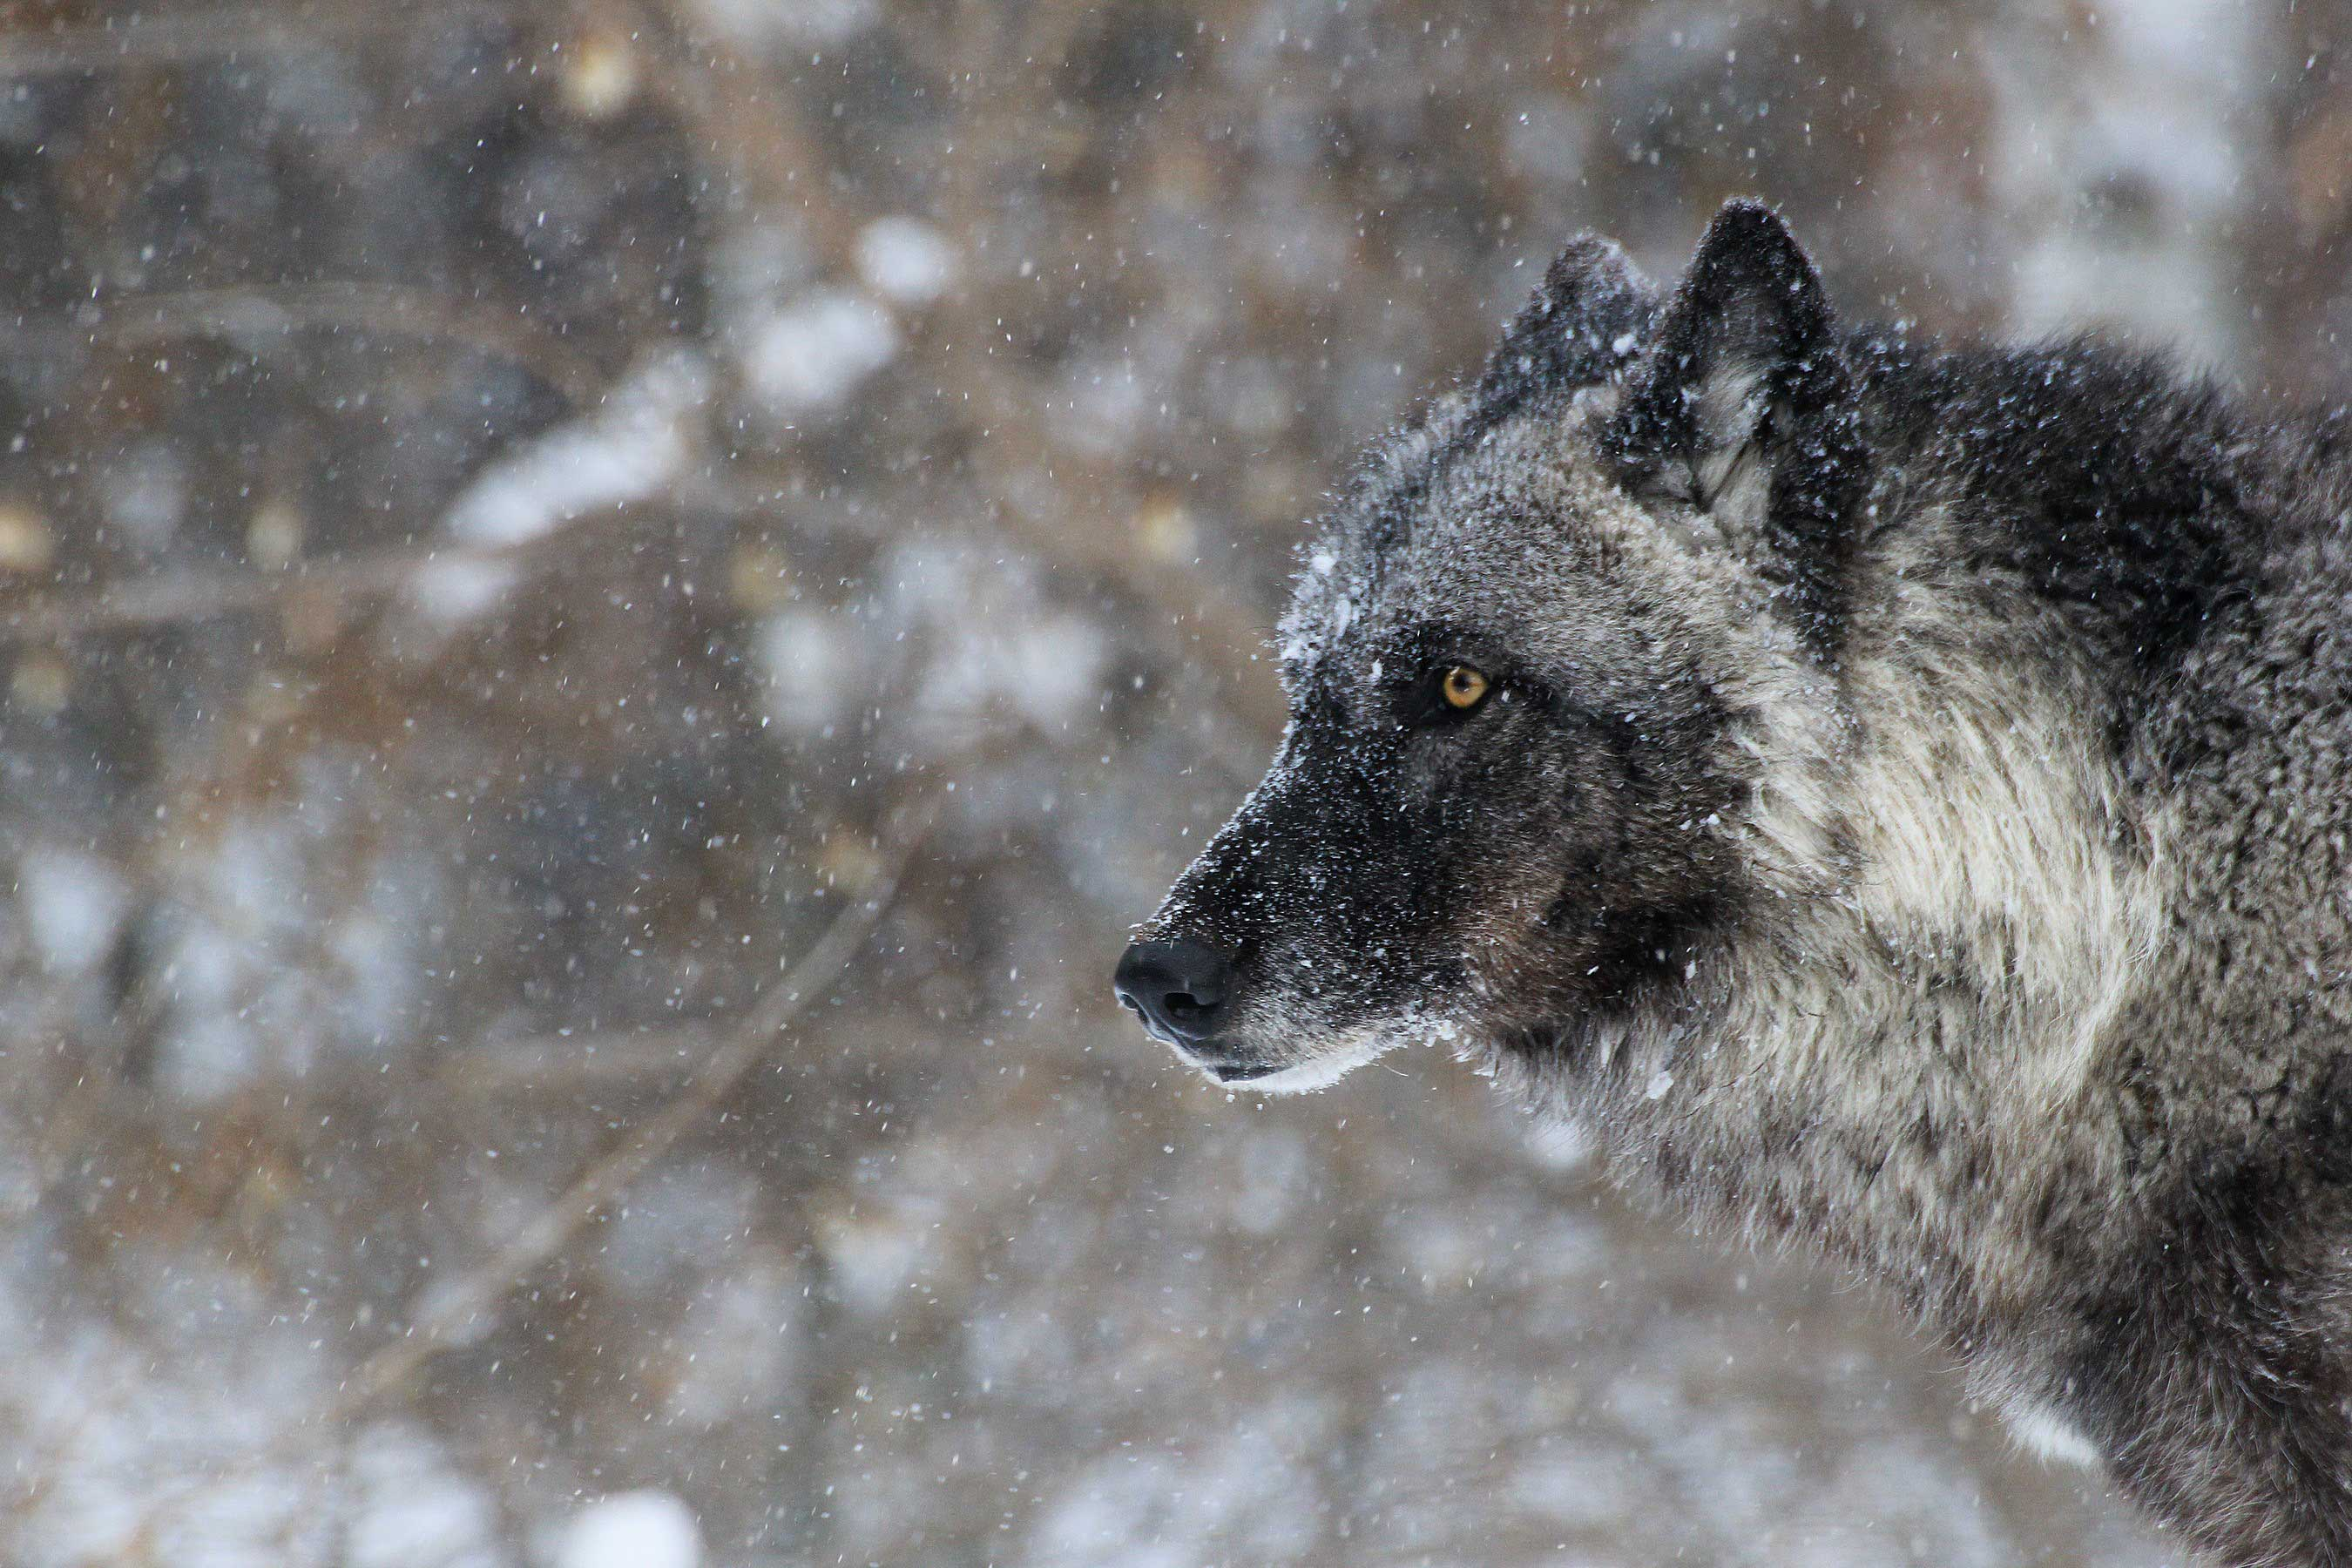 a wolf with snow falling around it